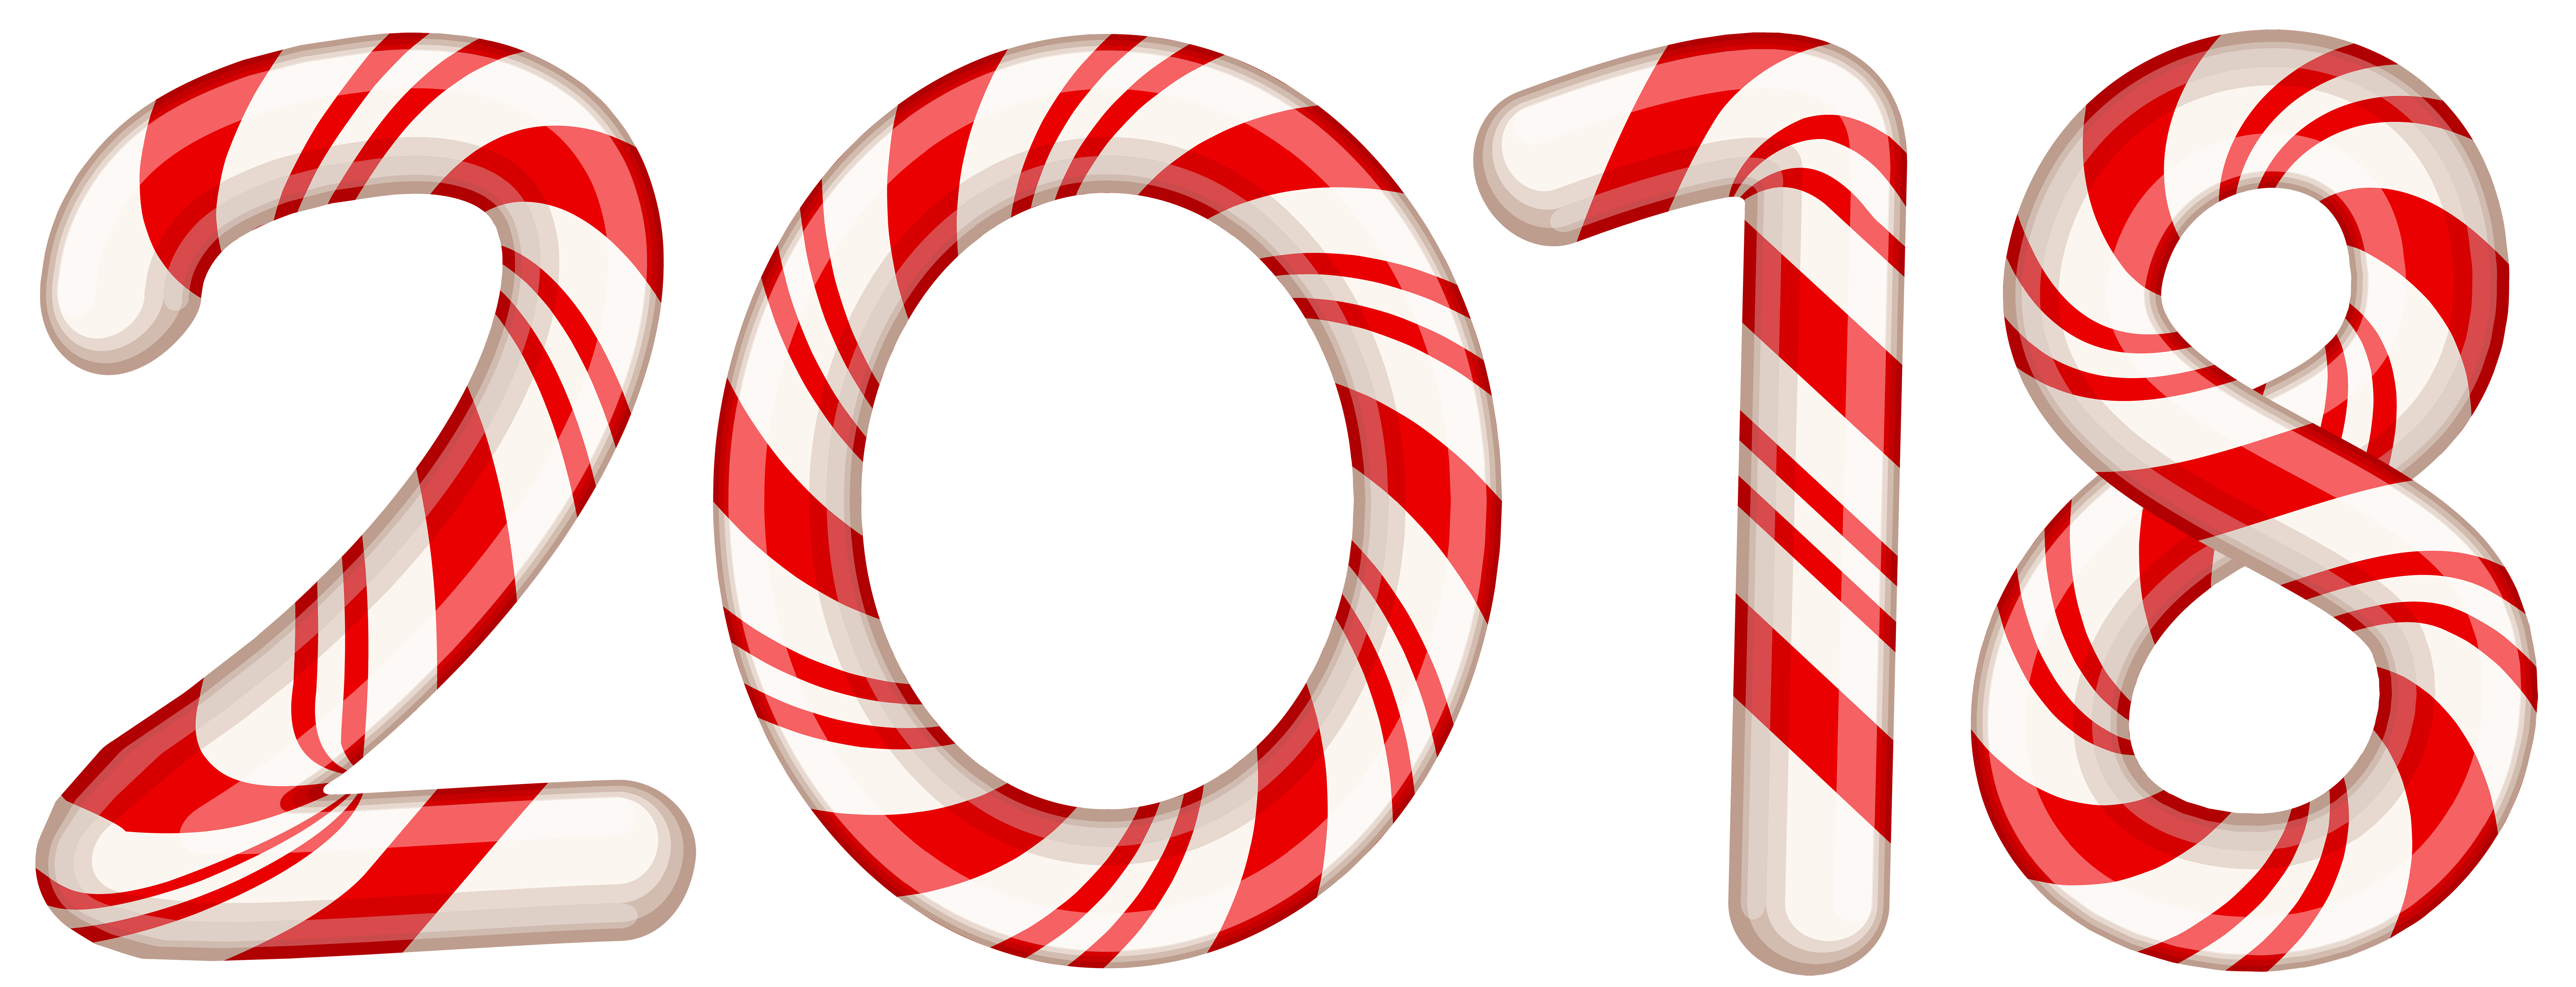 Exercise clipart christmas.  candy cane red